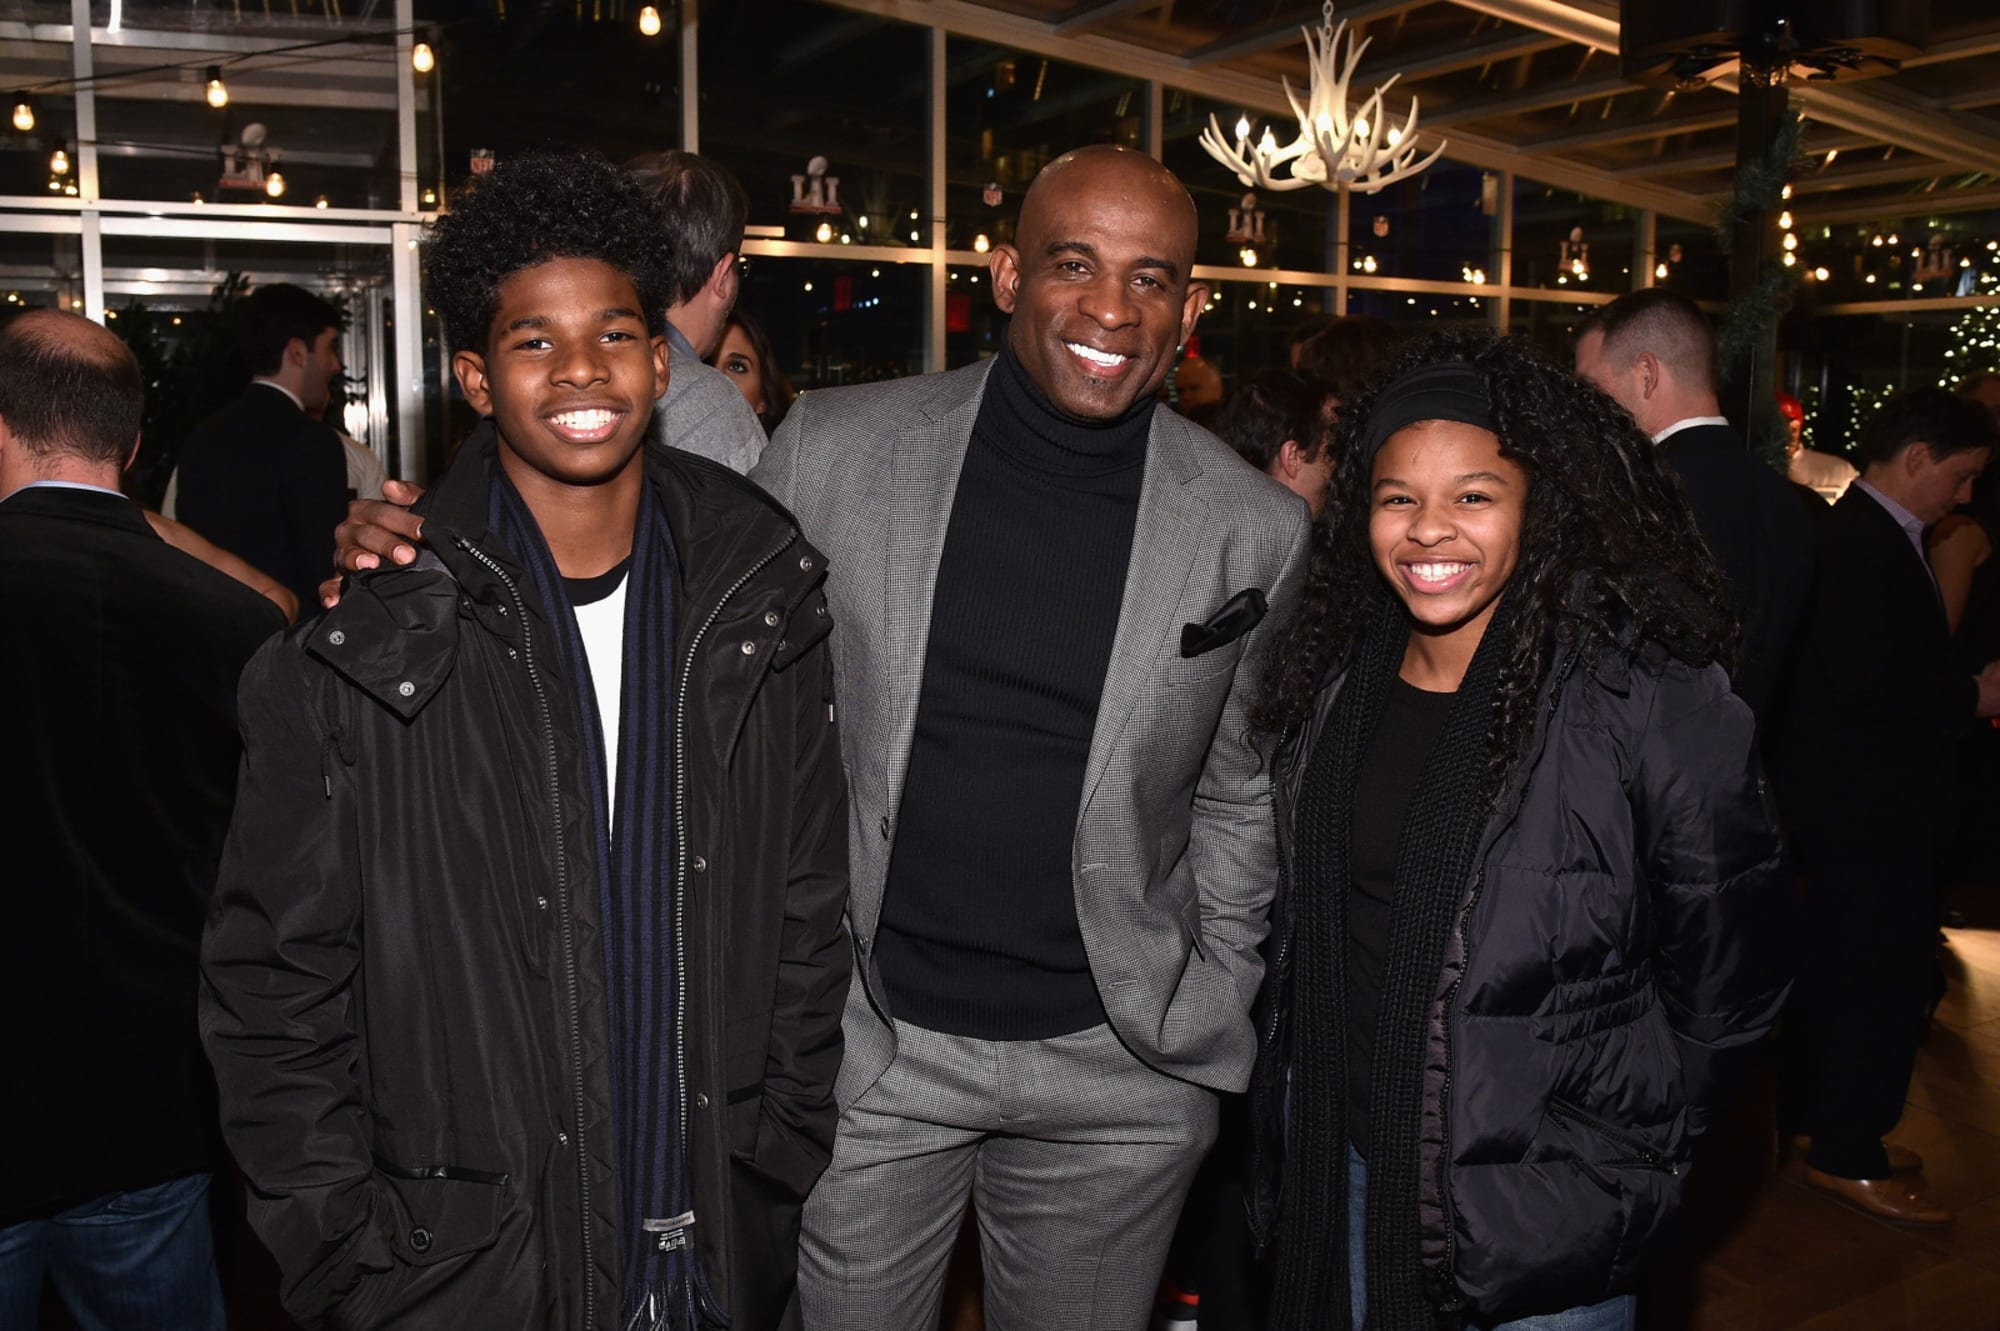 Deion Sanders gets commitment from his son Shedeur...